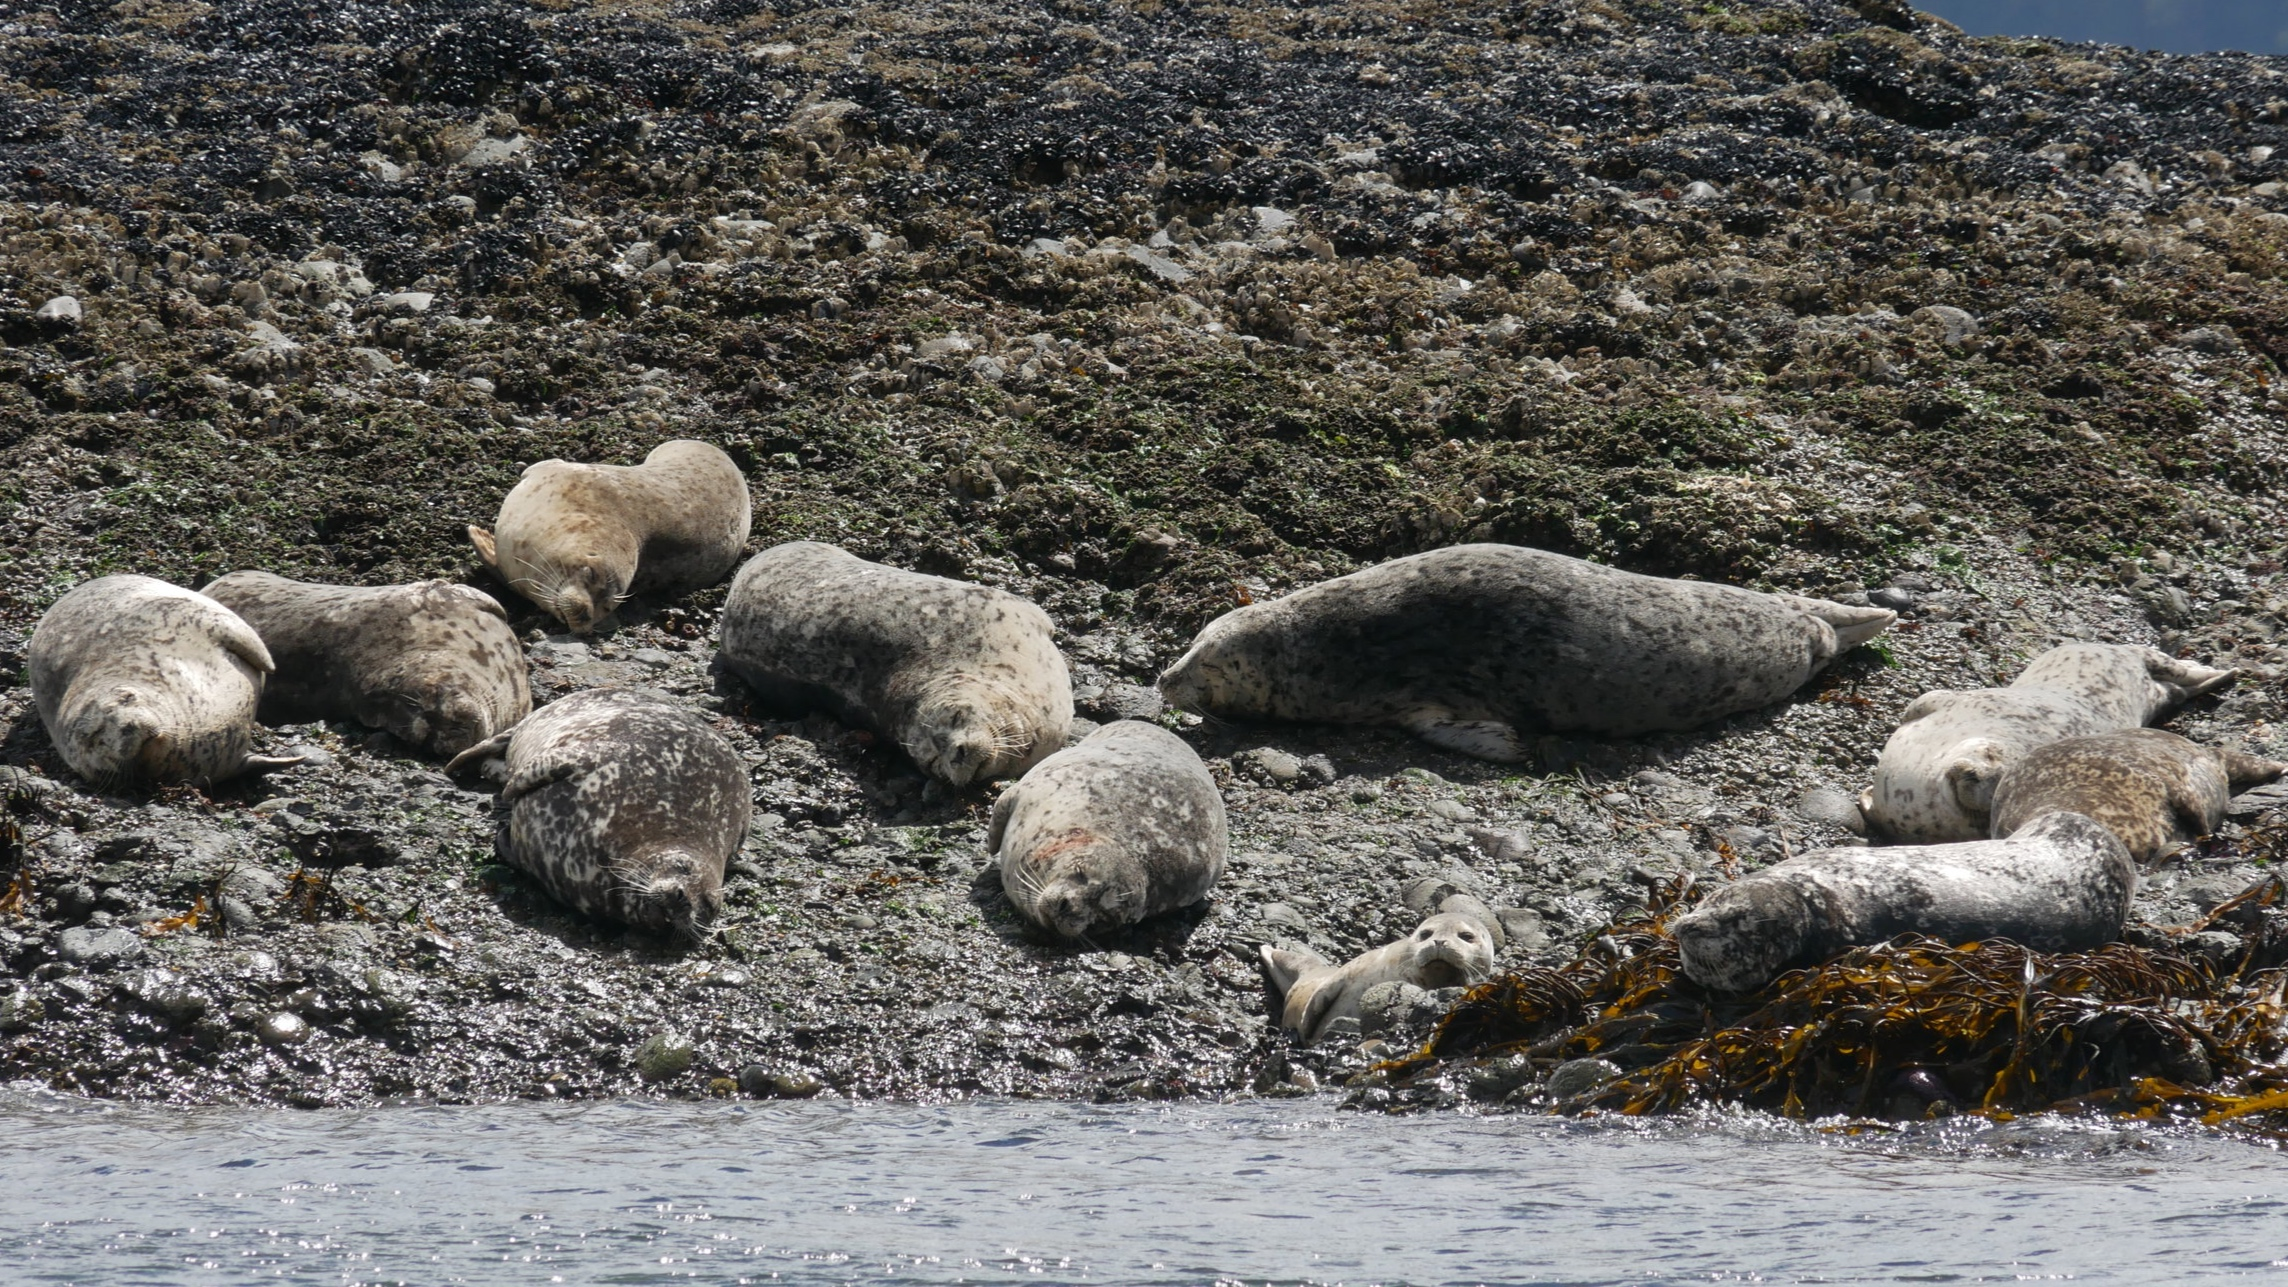 Harbour seals basking in the sun. Photo by Rodrigo Menezes.